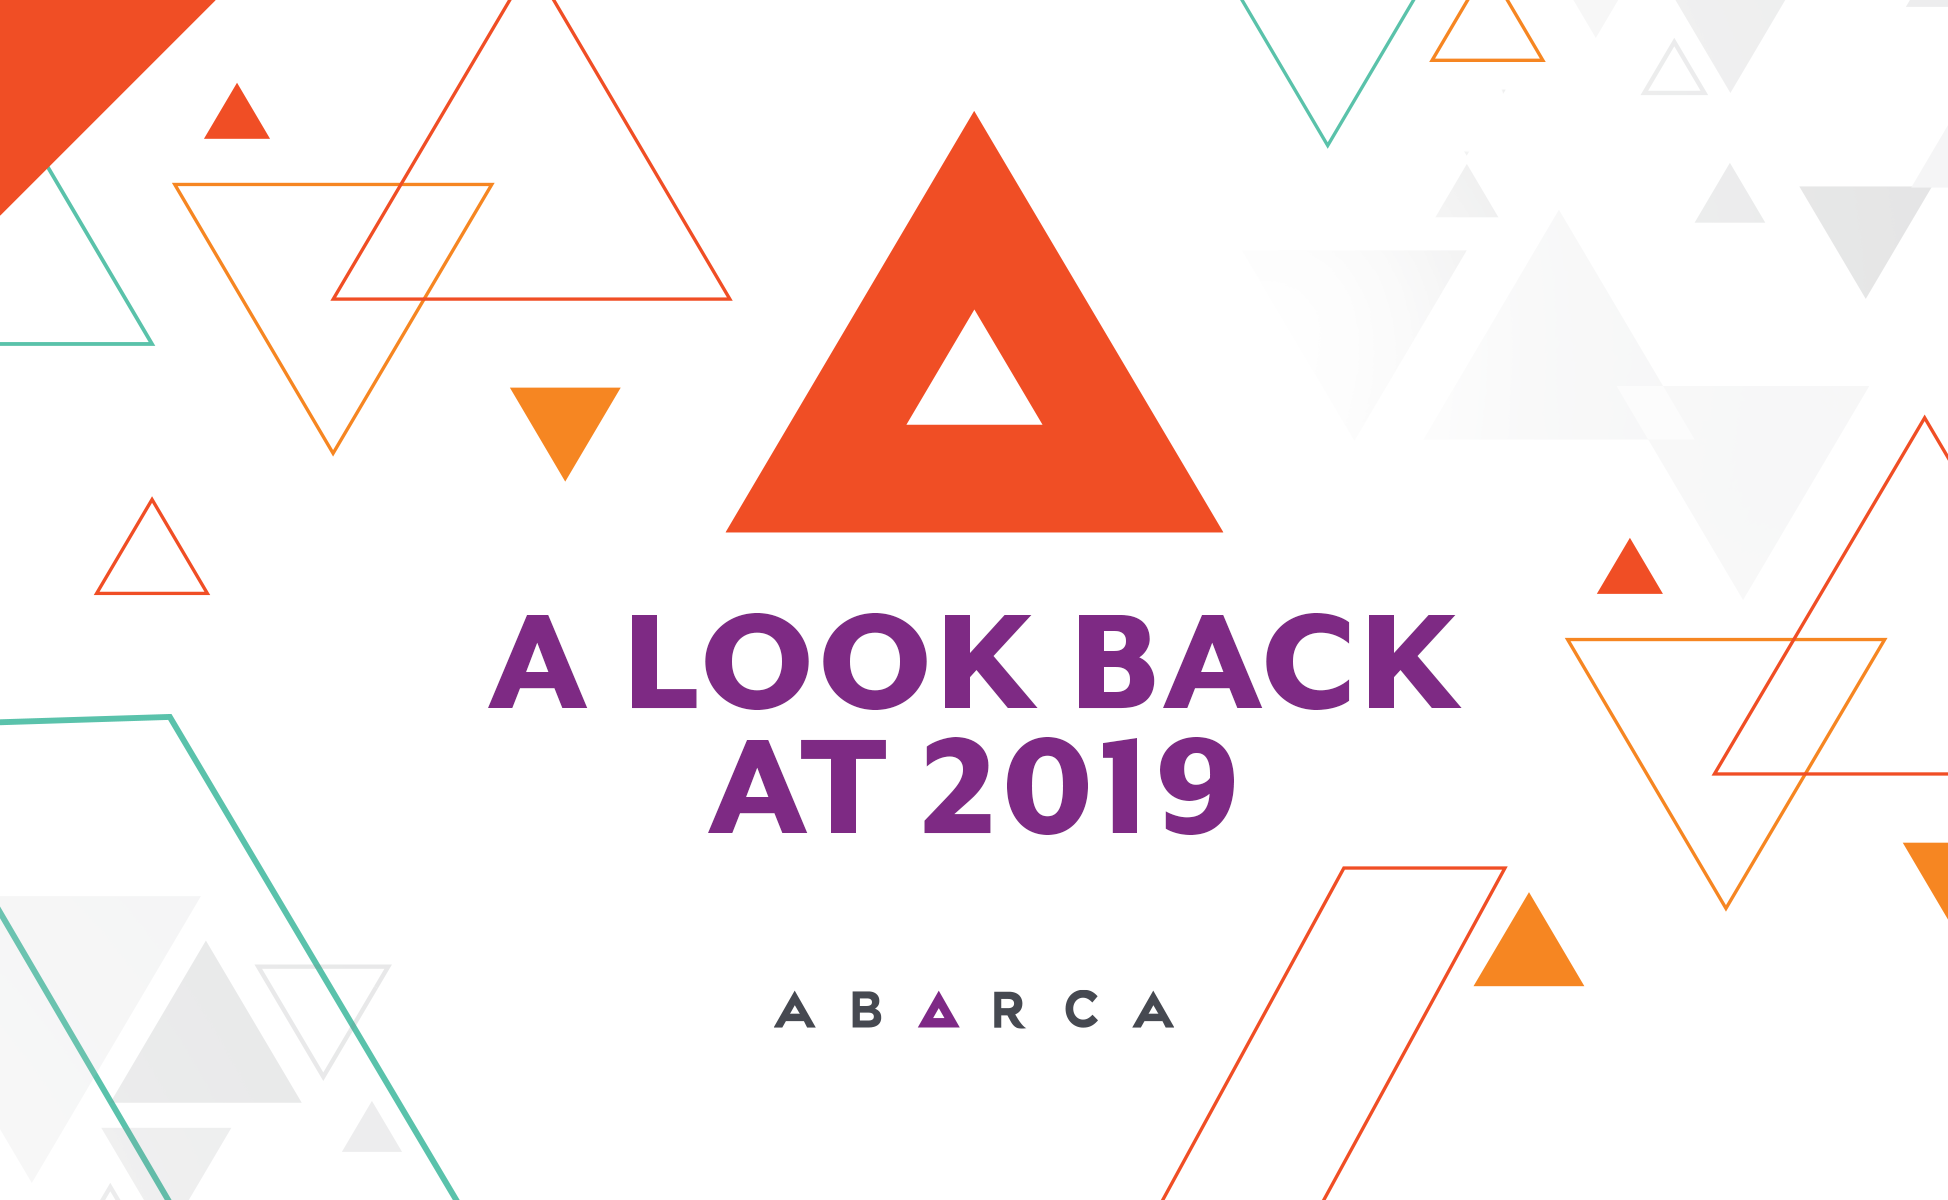 A Look Back at 2019: Abarca's Proudest Moments